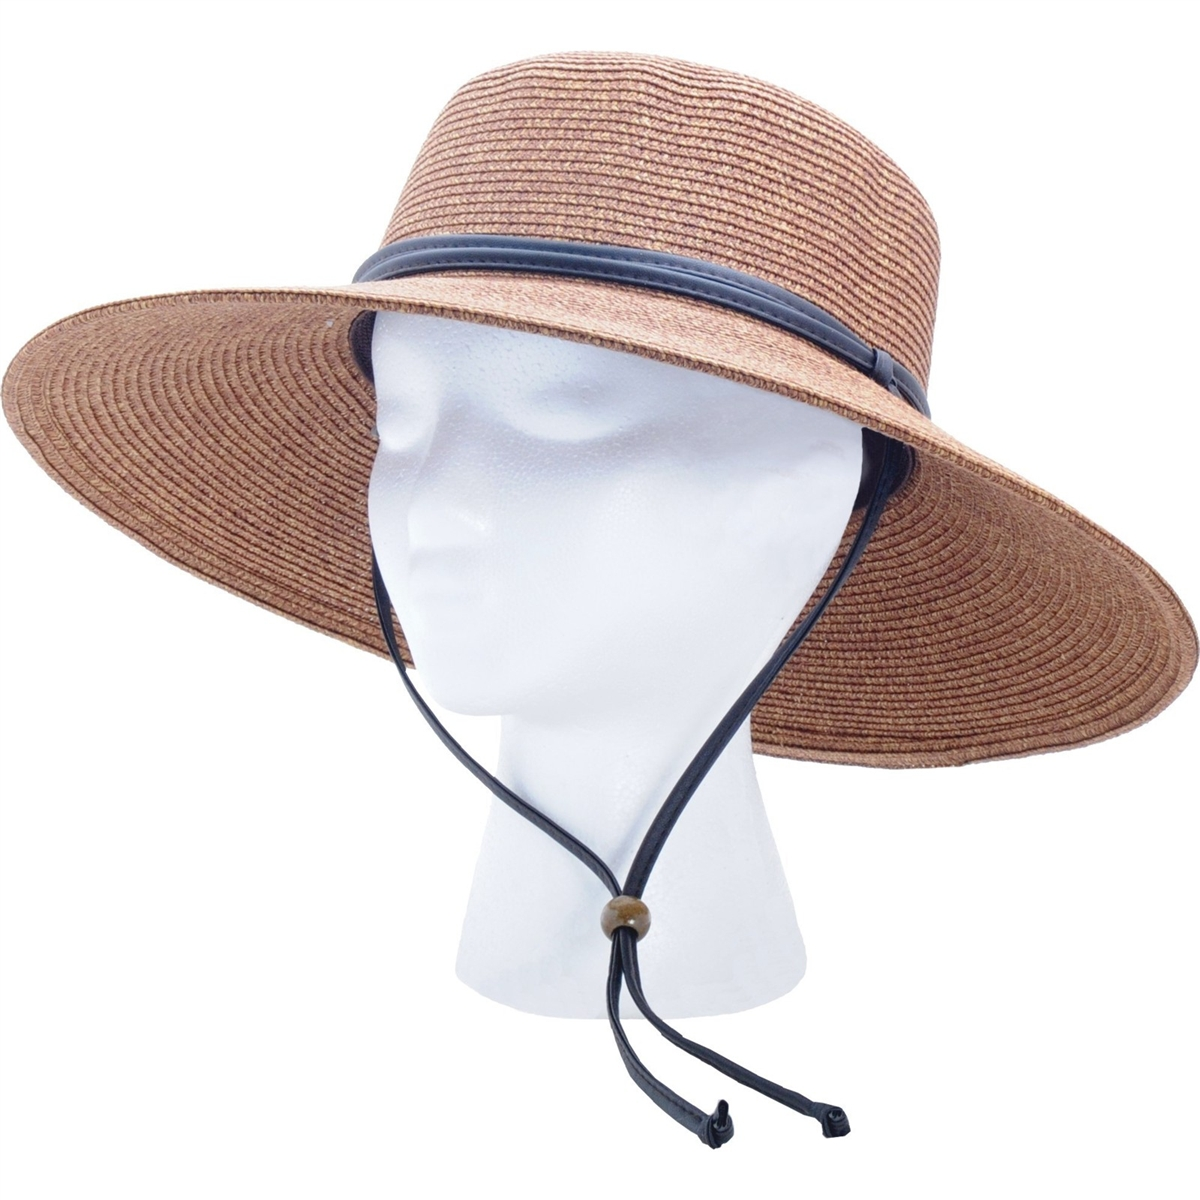 bfa751ccb Women's Braided Sun Hat - Dark Brown UPF 50+